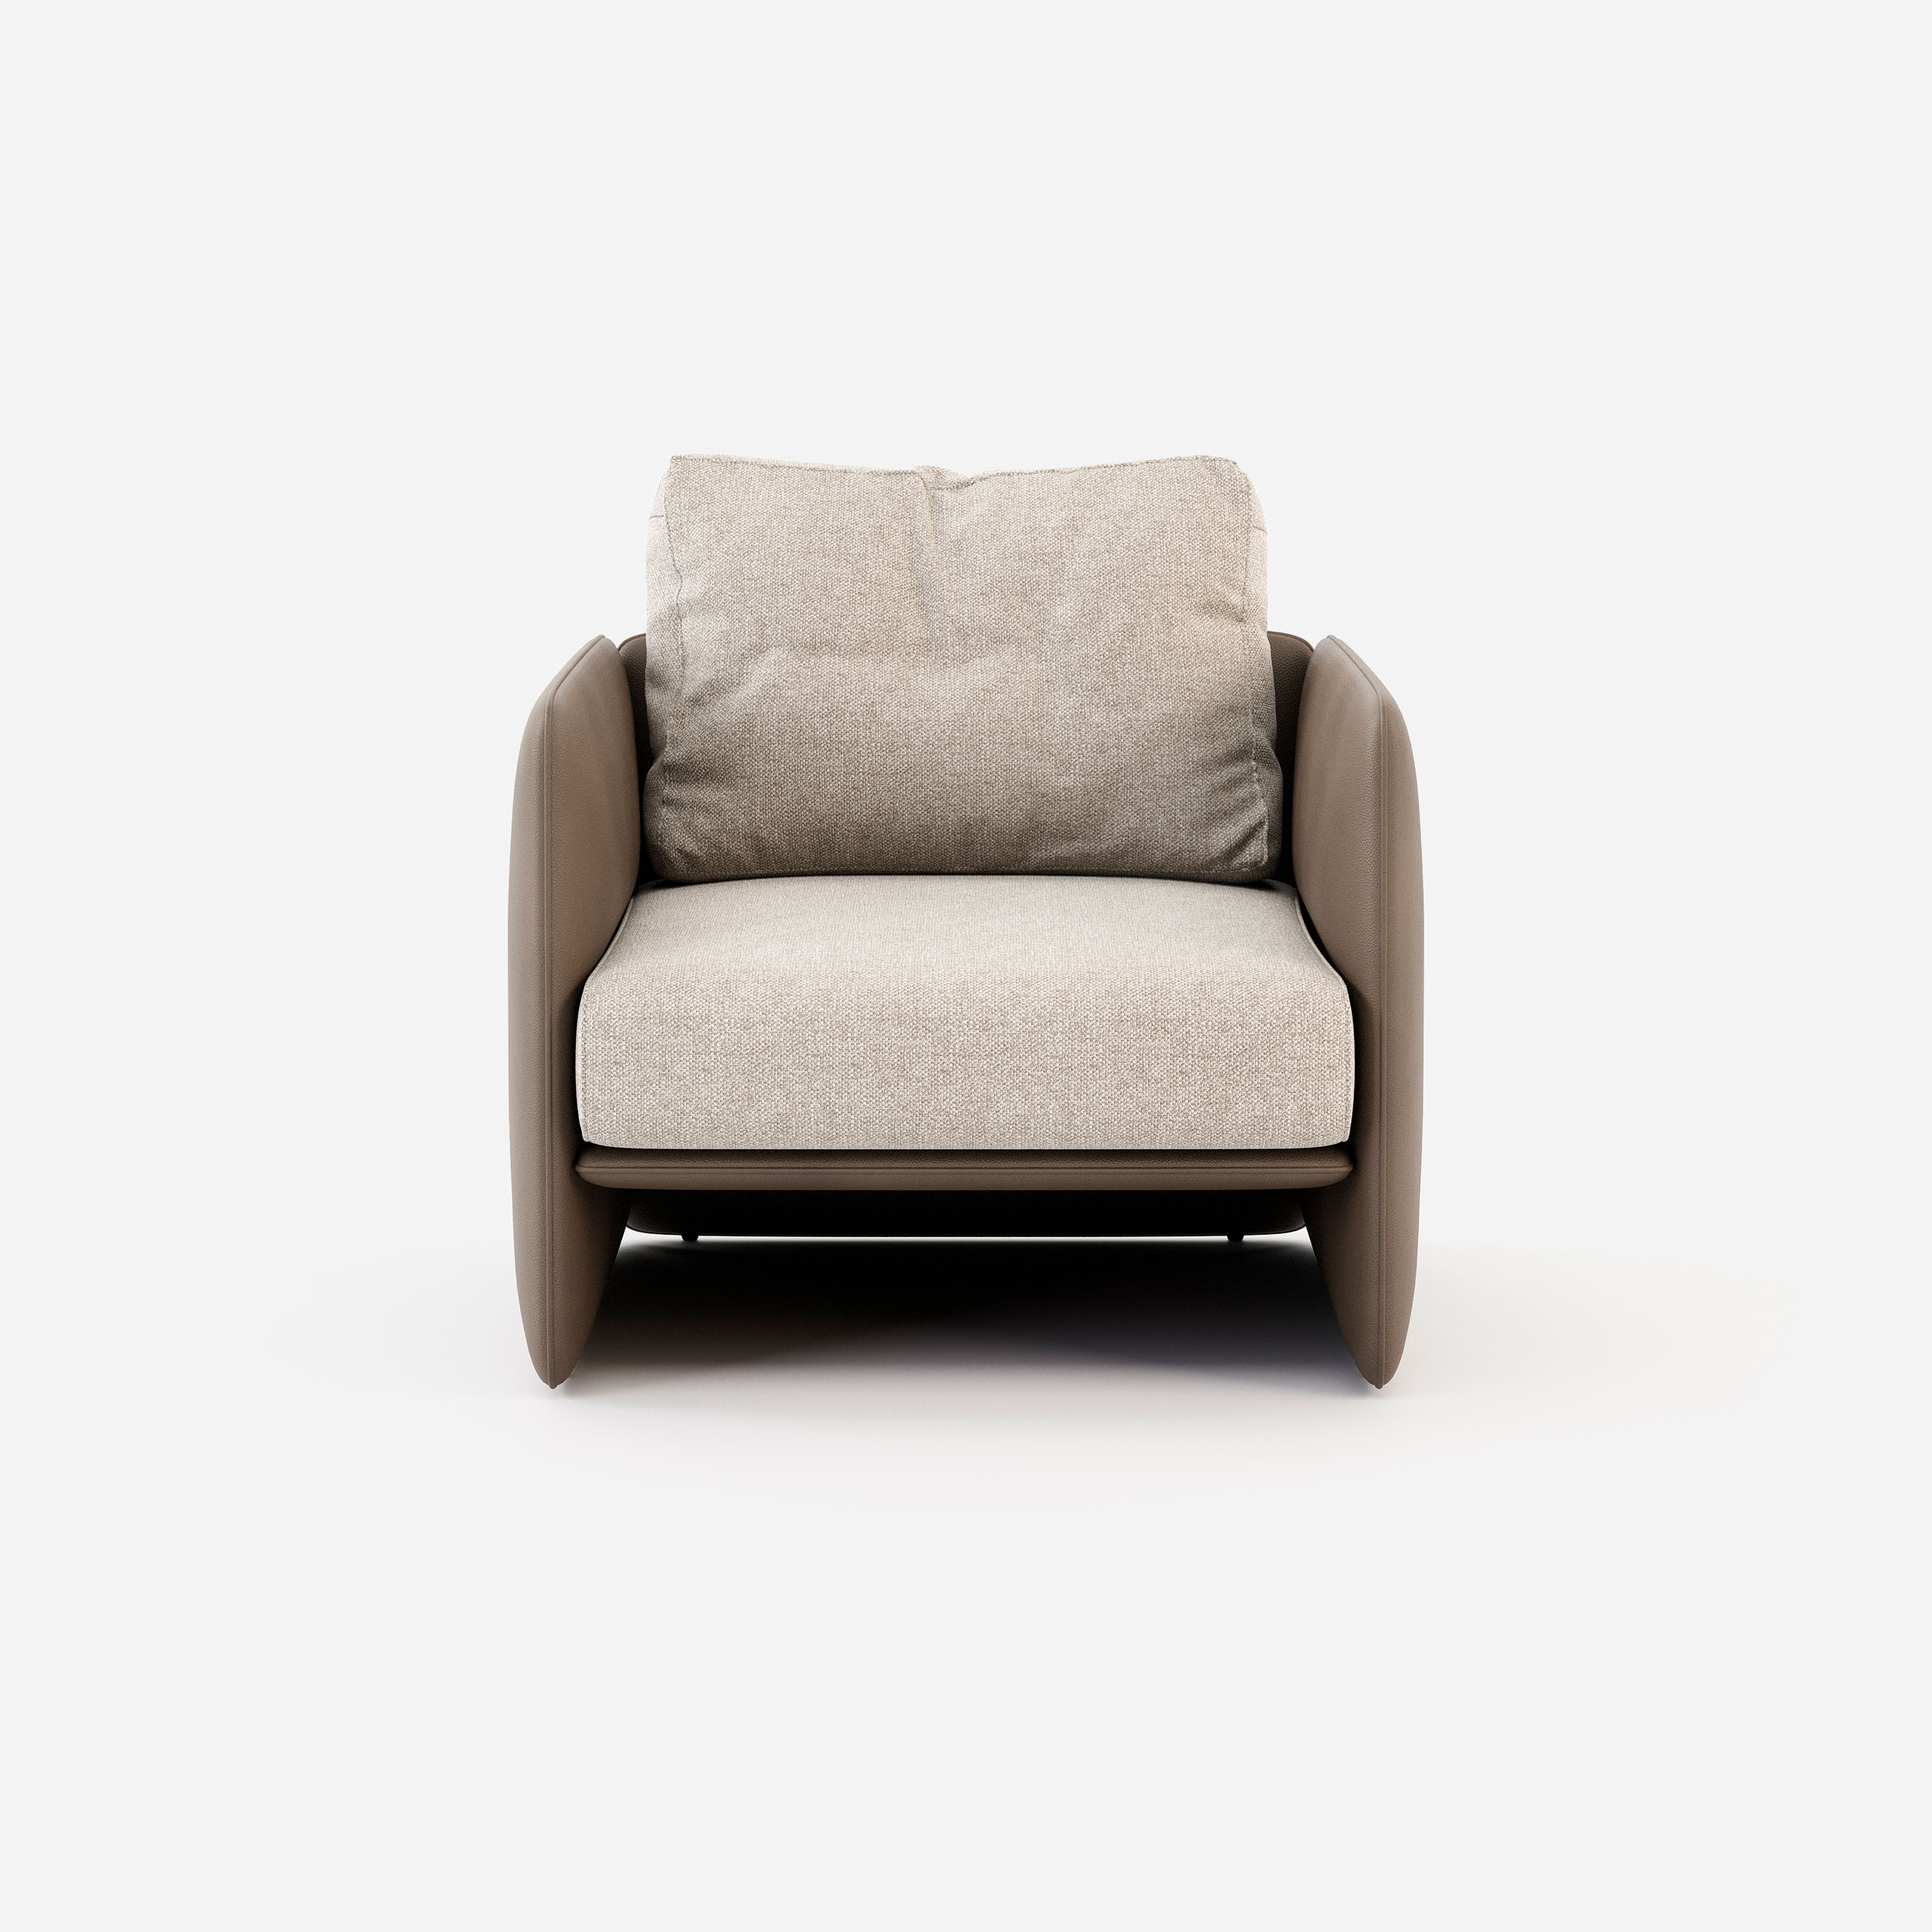 miller-armchair-domkapa-new-2021-collection-living-room-decor-(4)